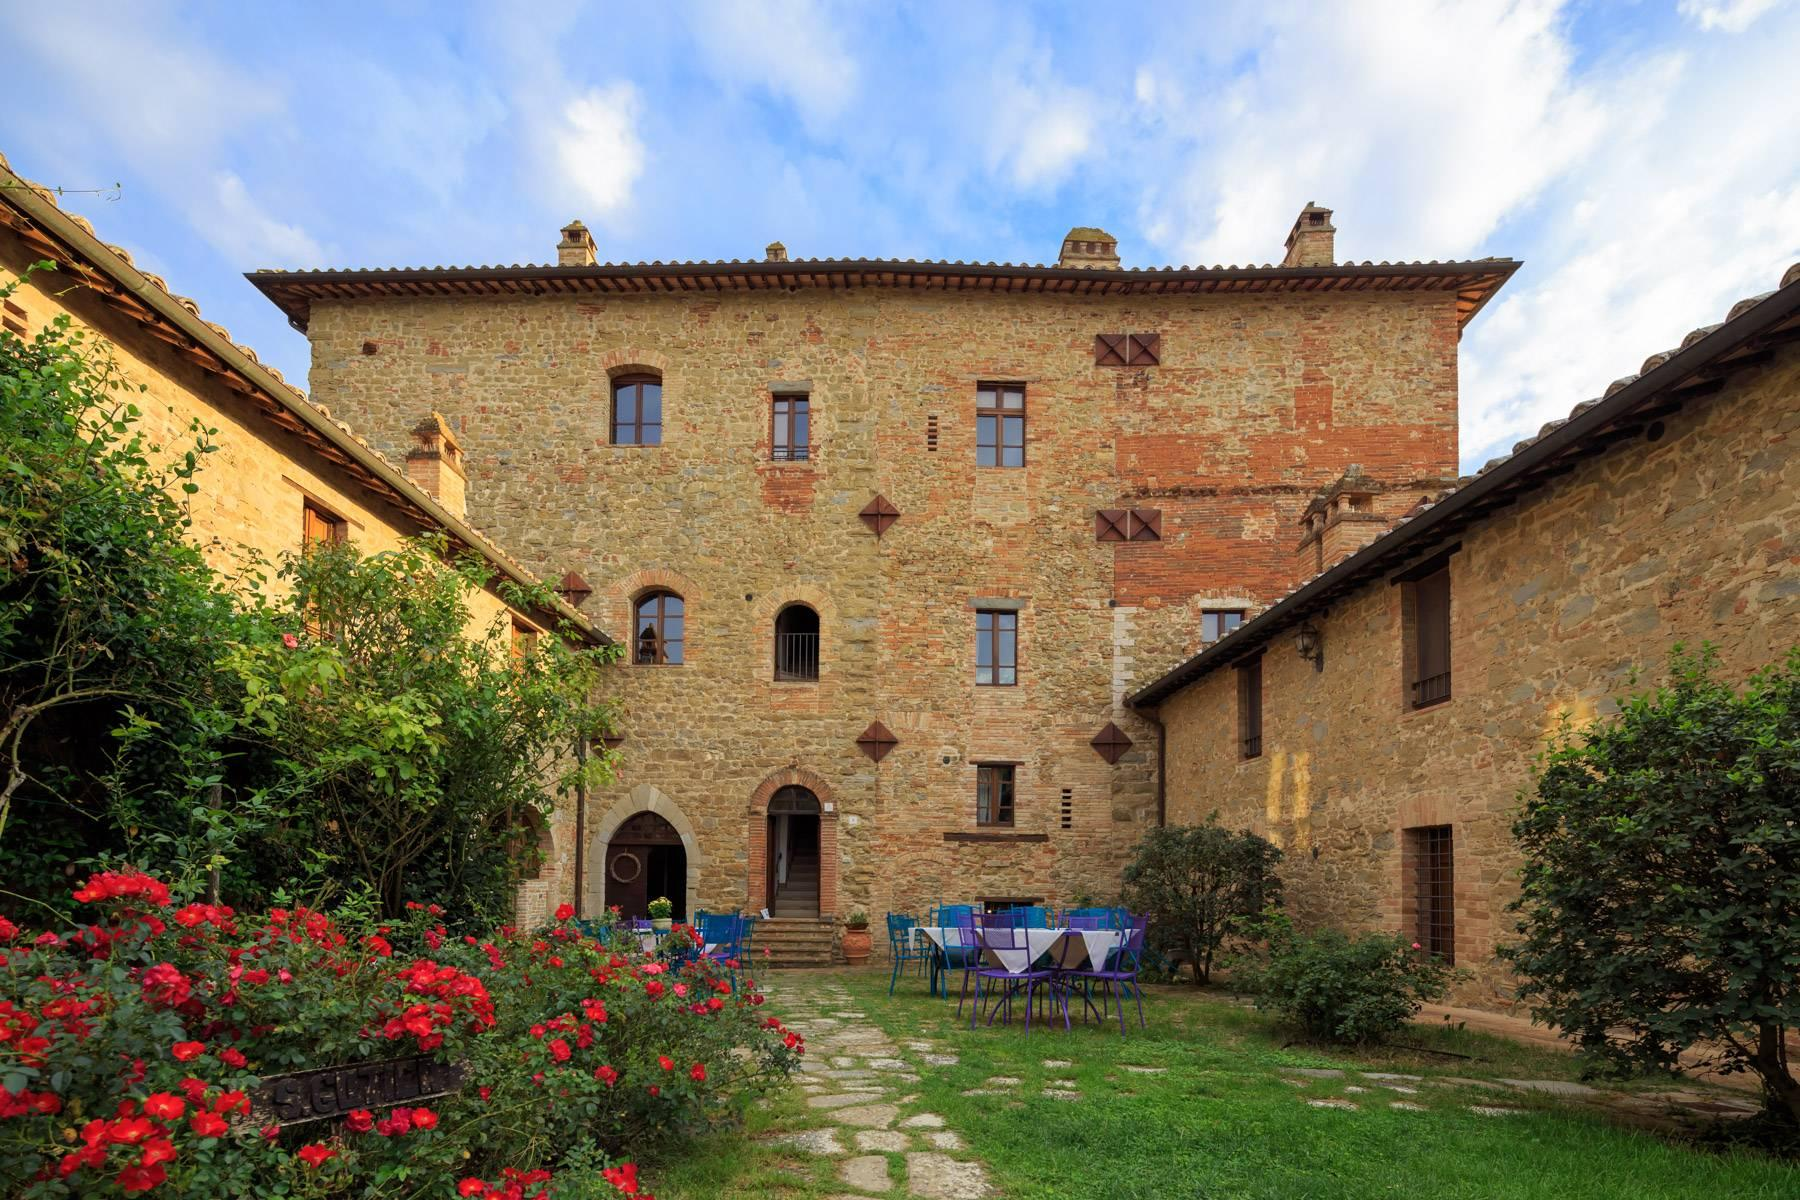 Magnificent castle in the heart of Umbria - 19